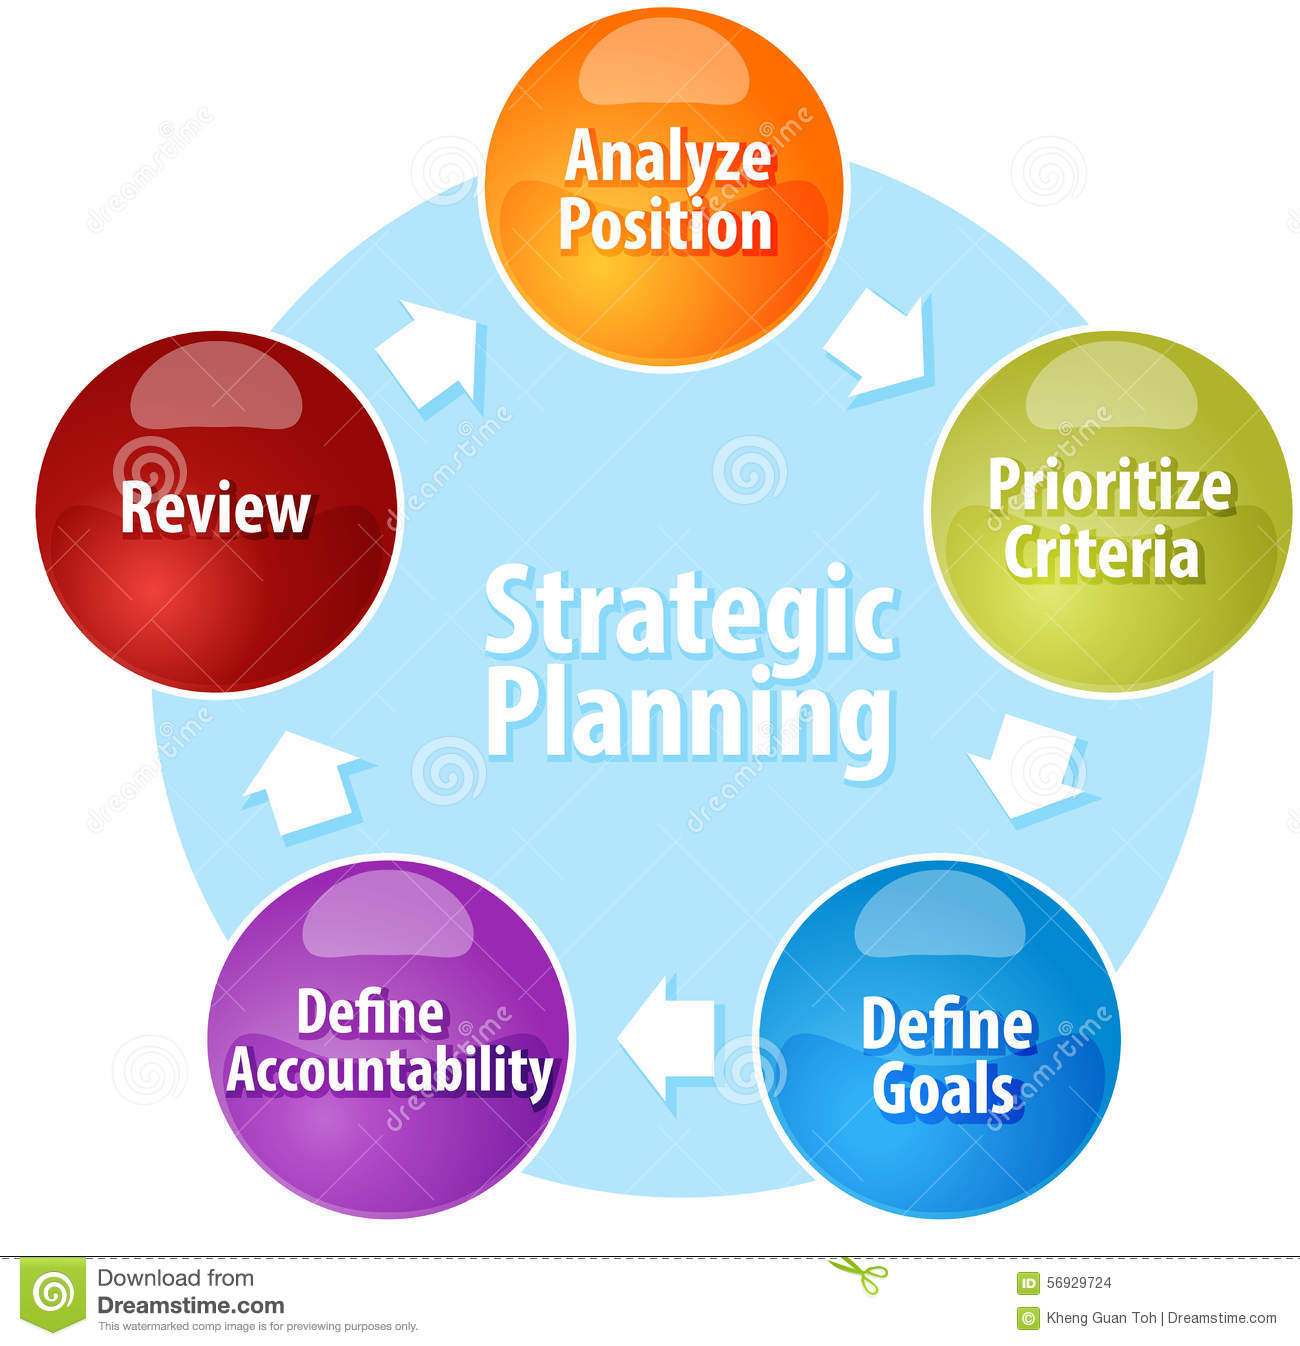 starategic management What is strategic management in a nutshell, it is goals-oriented management in which the mission and planned achievements of an organization are clearly set out and.